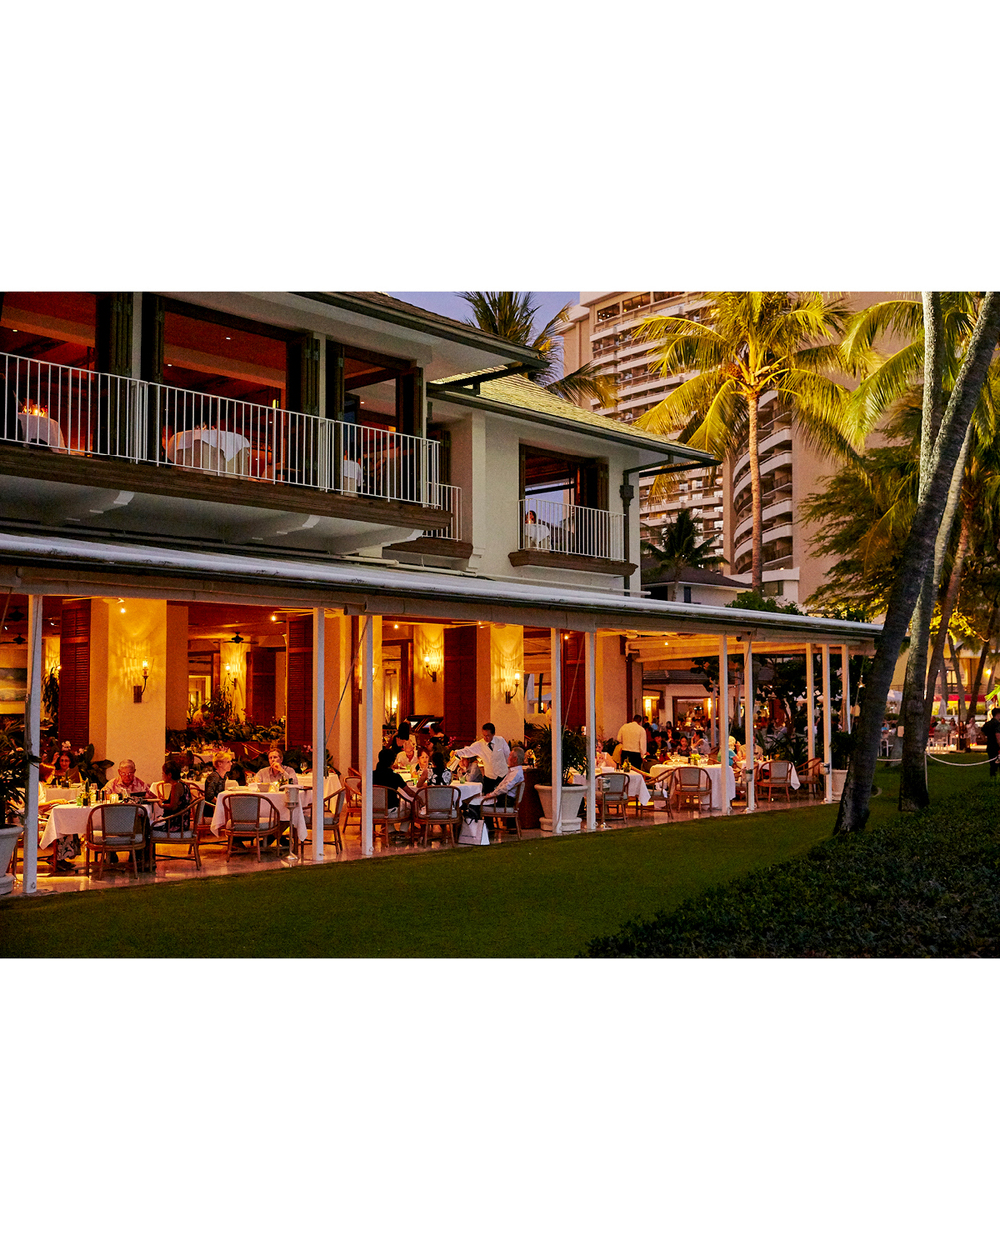 DINING AT ORCHIDS RESTAURANT AT HALEKULANI